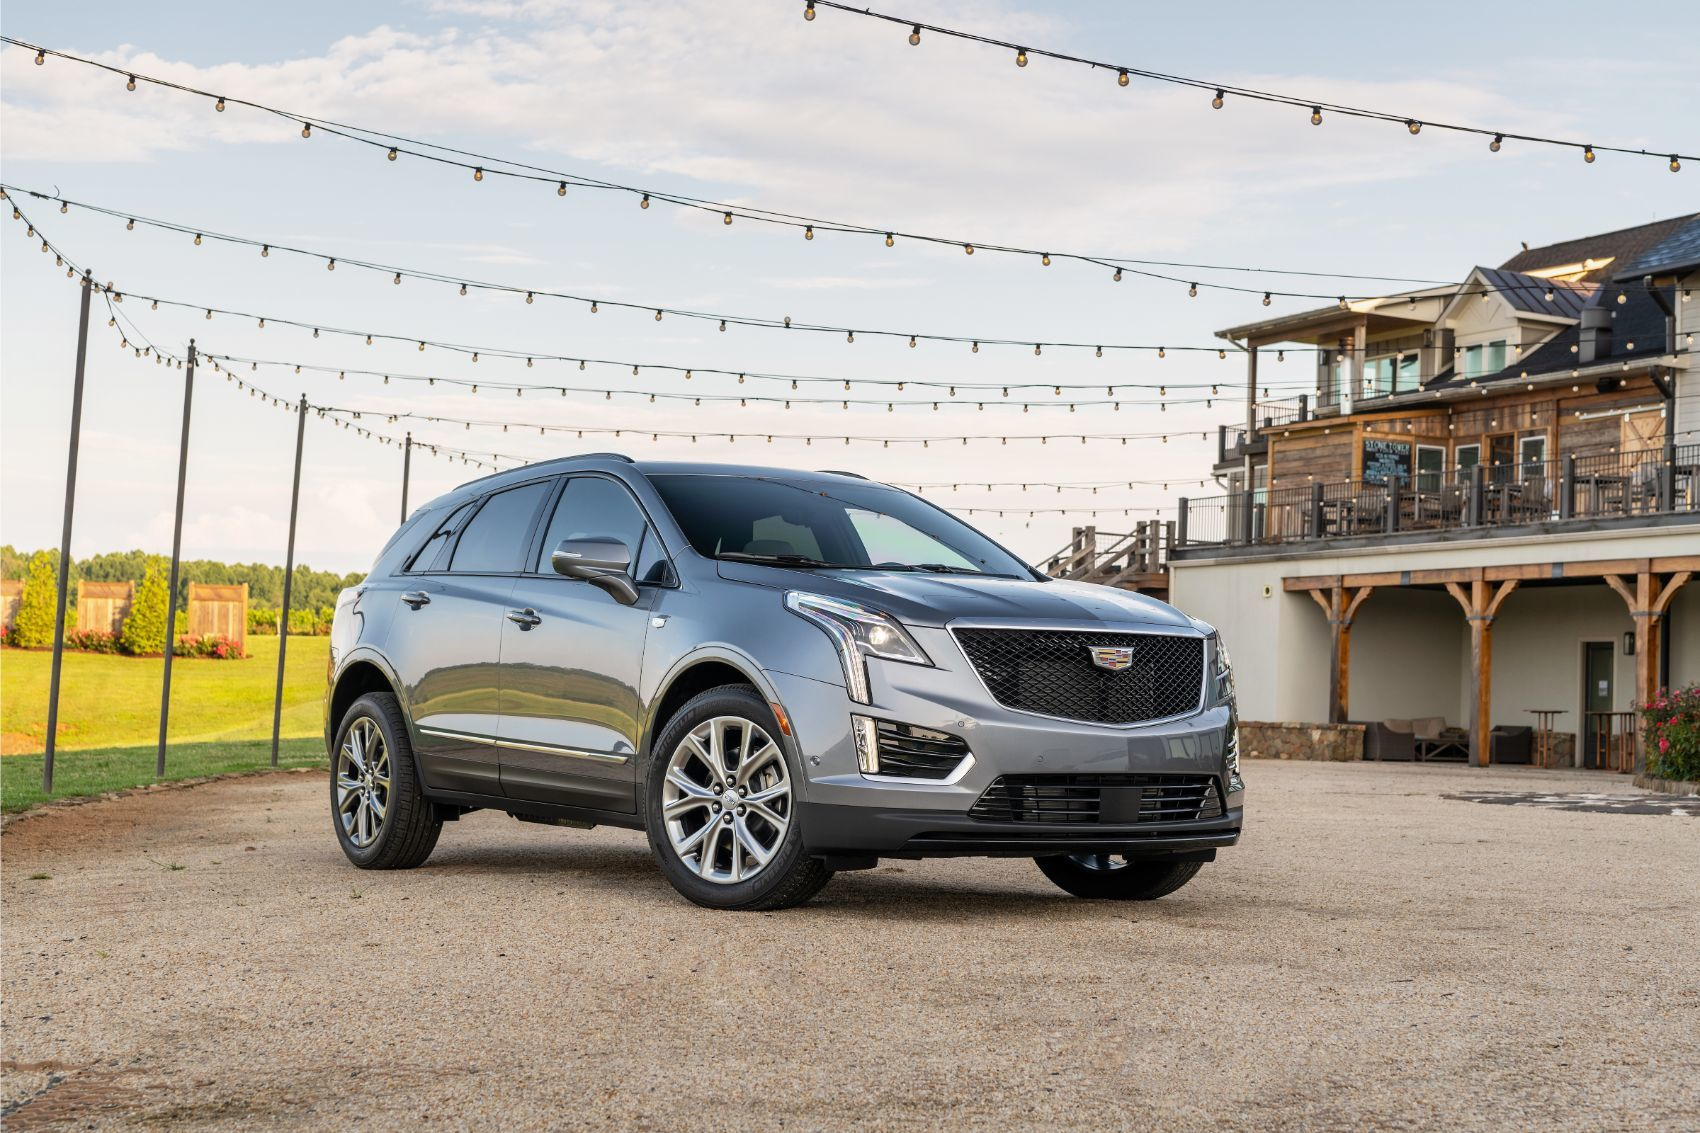 2020 Cadillac XT5: Caddy's Best-Seller Gets A Whole Lotta Updates!